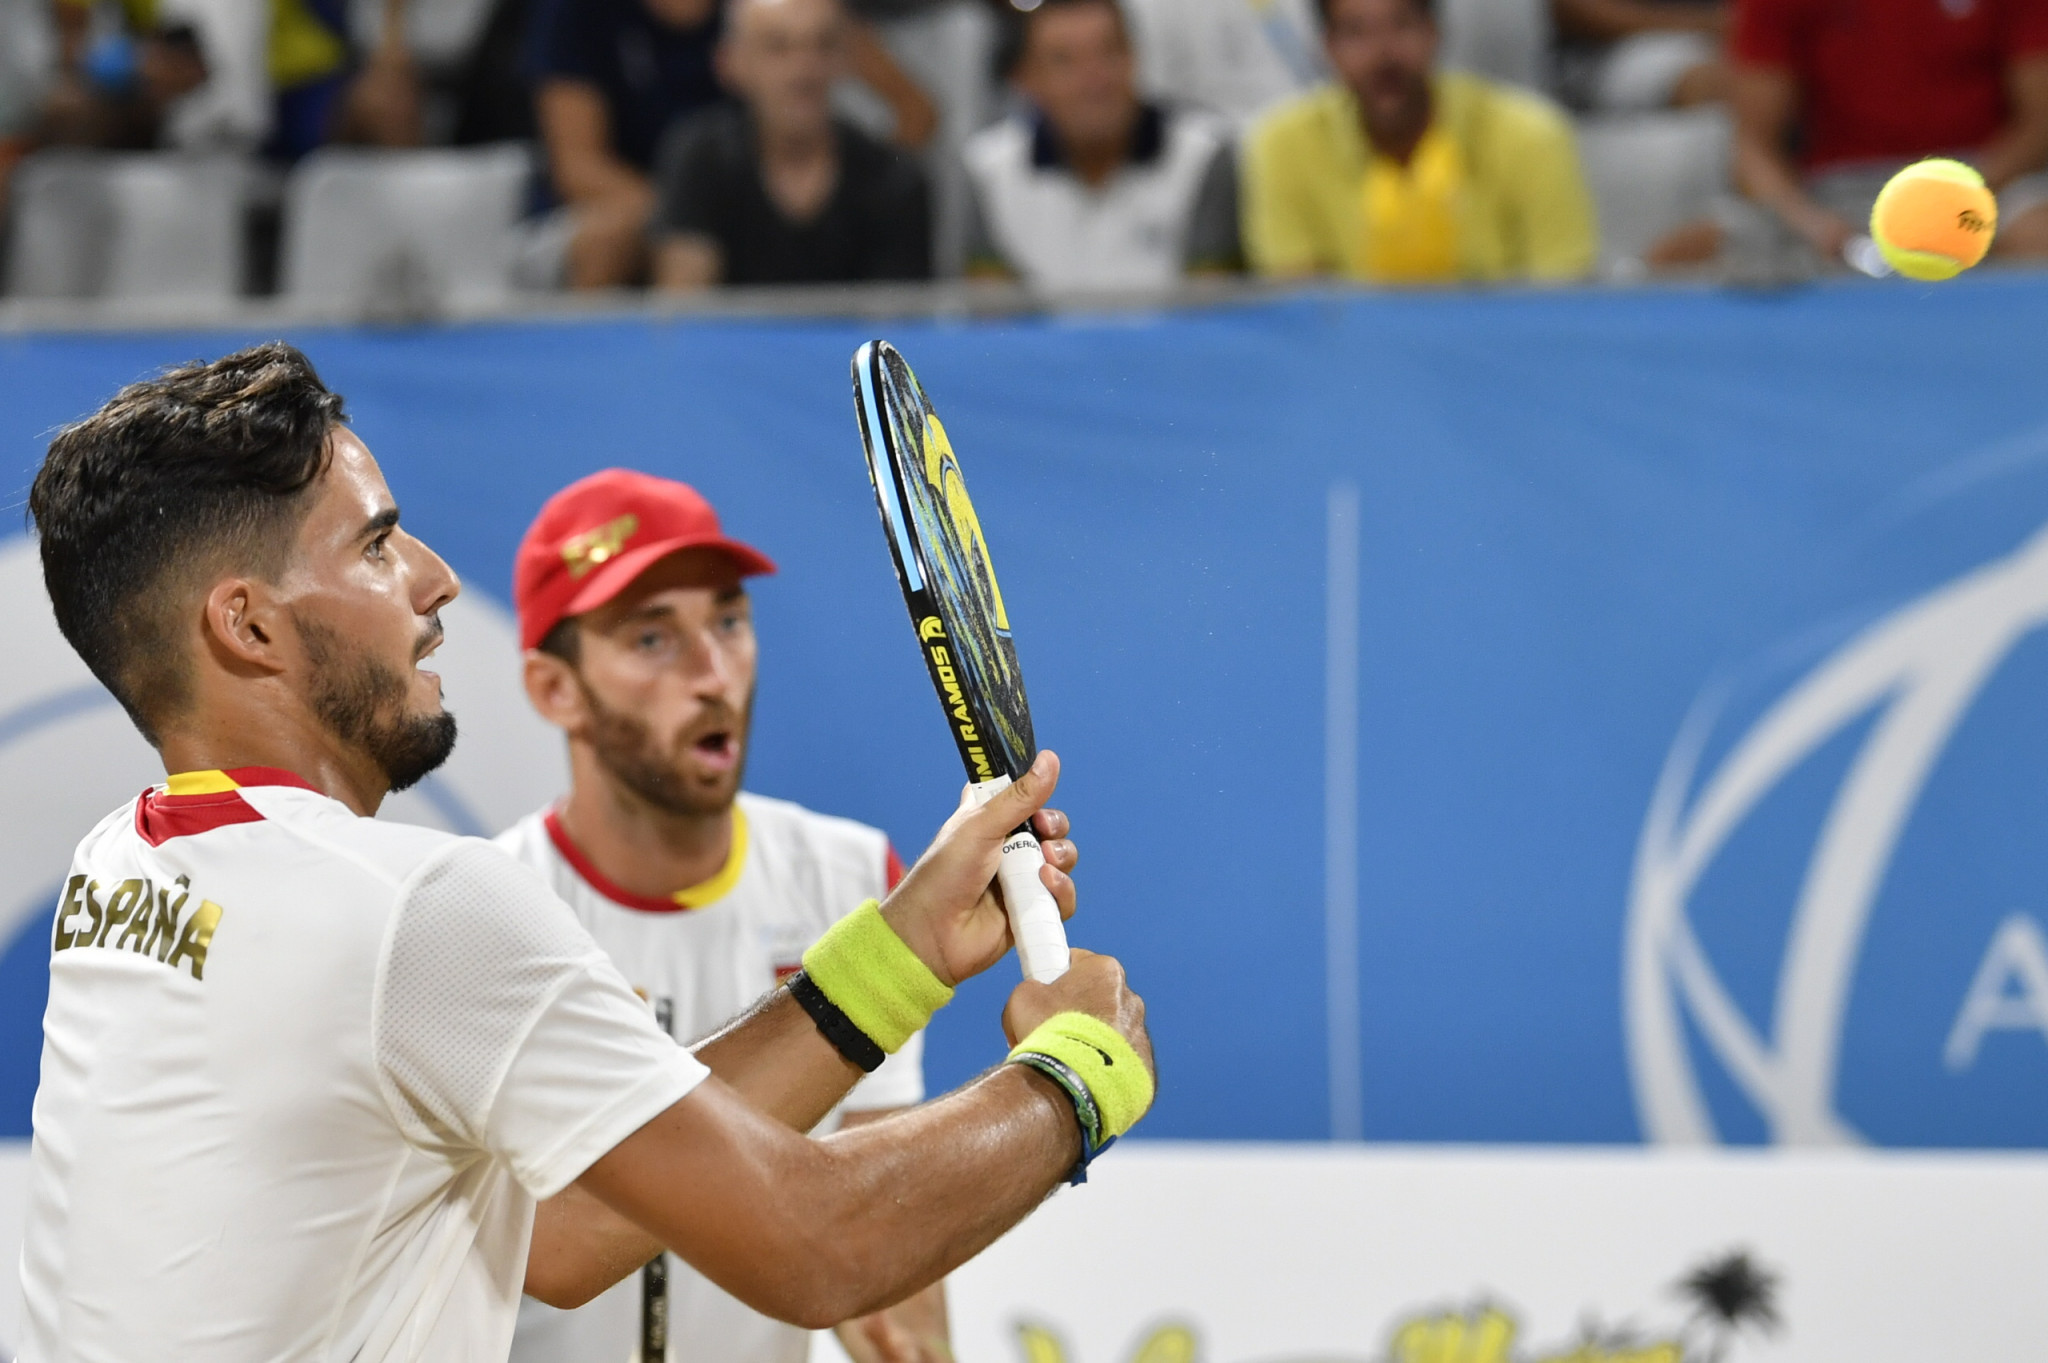 Spain;s Antonio Ramos and Gerard Rodriquez won the men's beach tennis ©ANOC World Beach Games